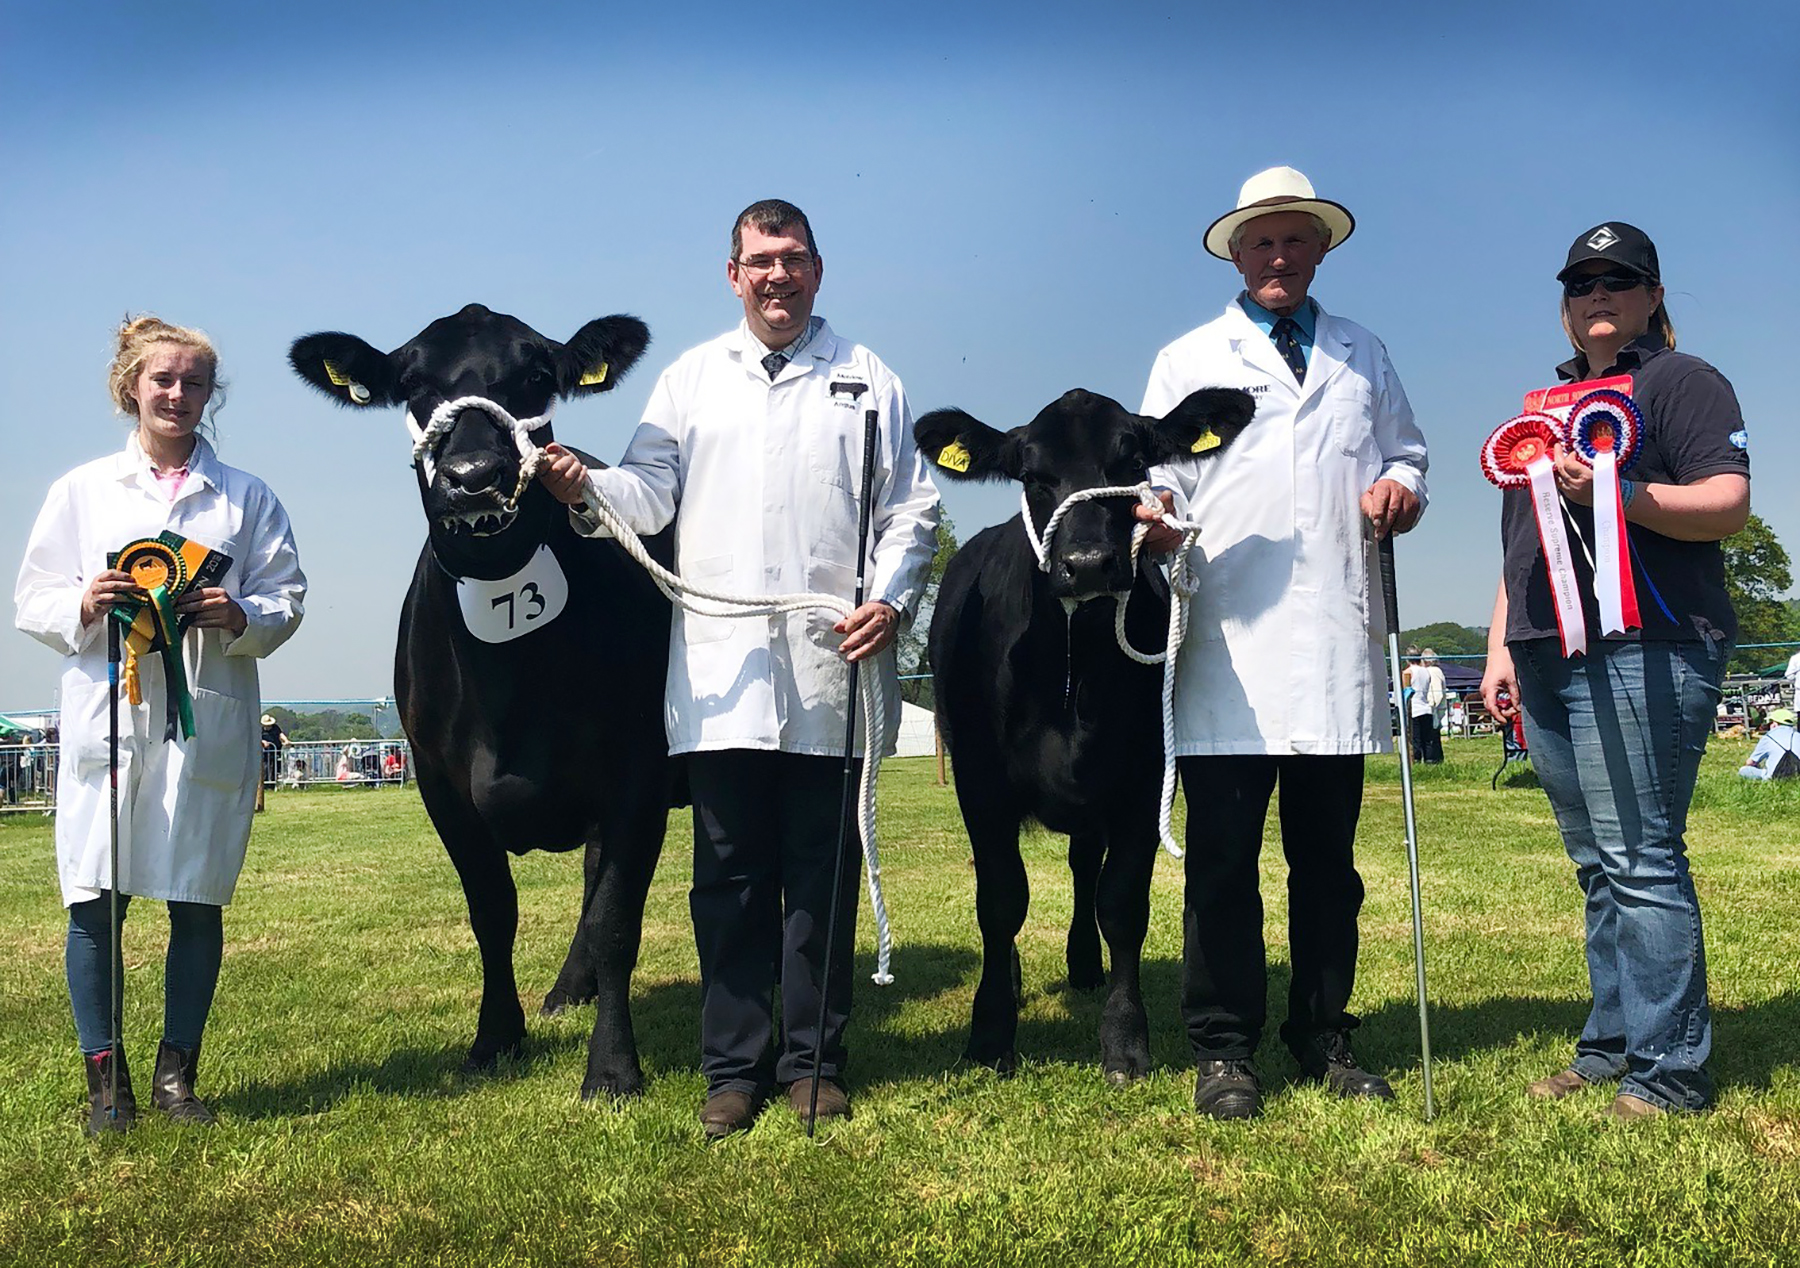 Melview on top form at North Somerset Show